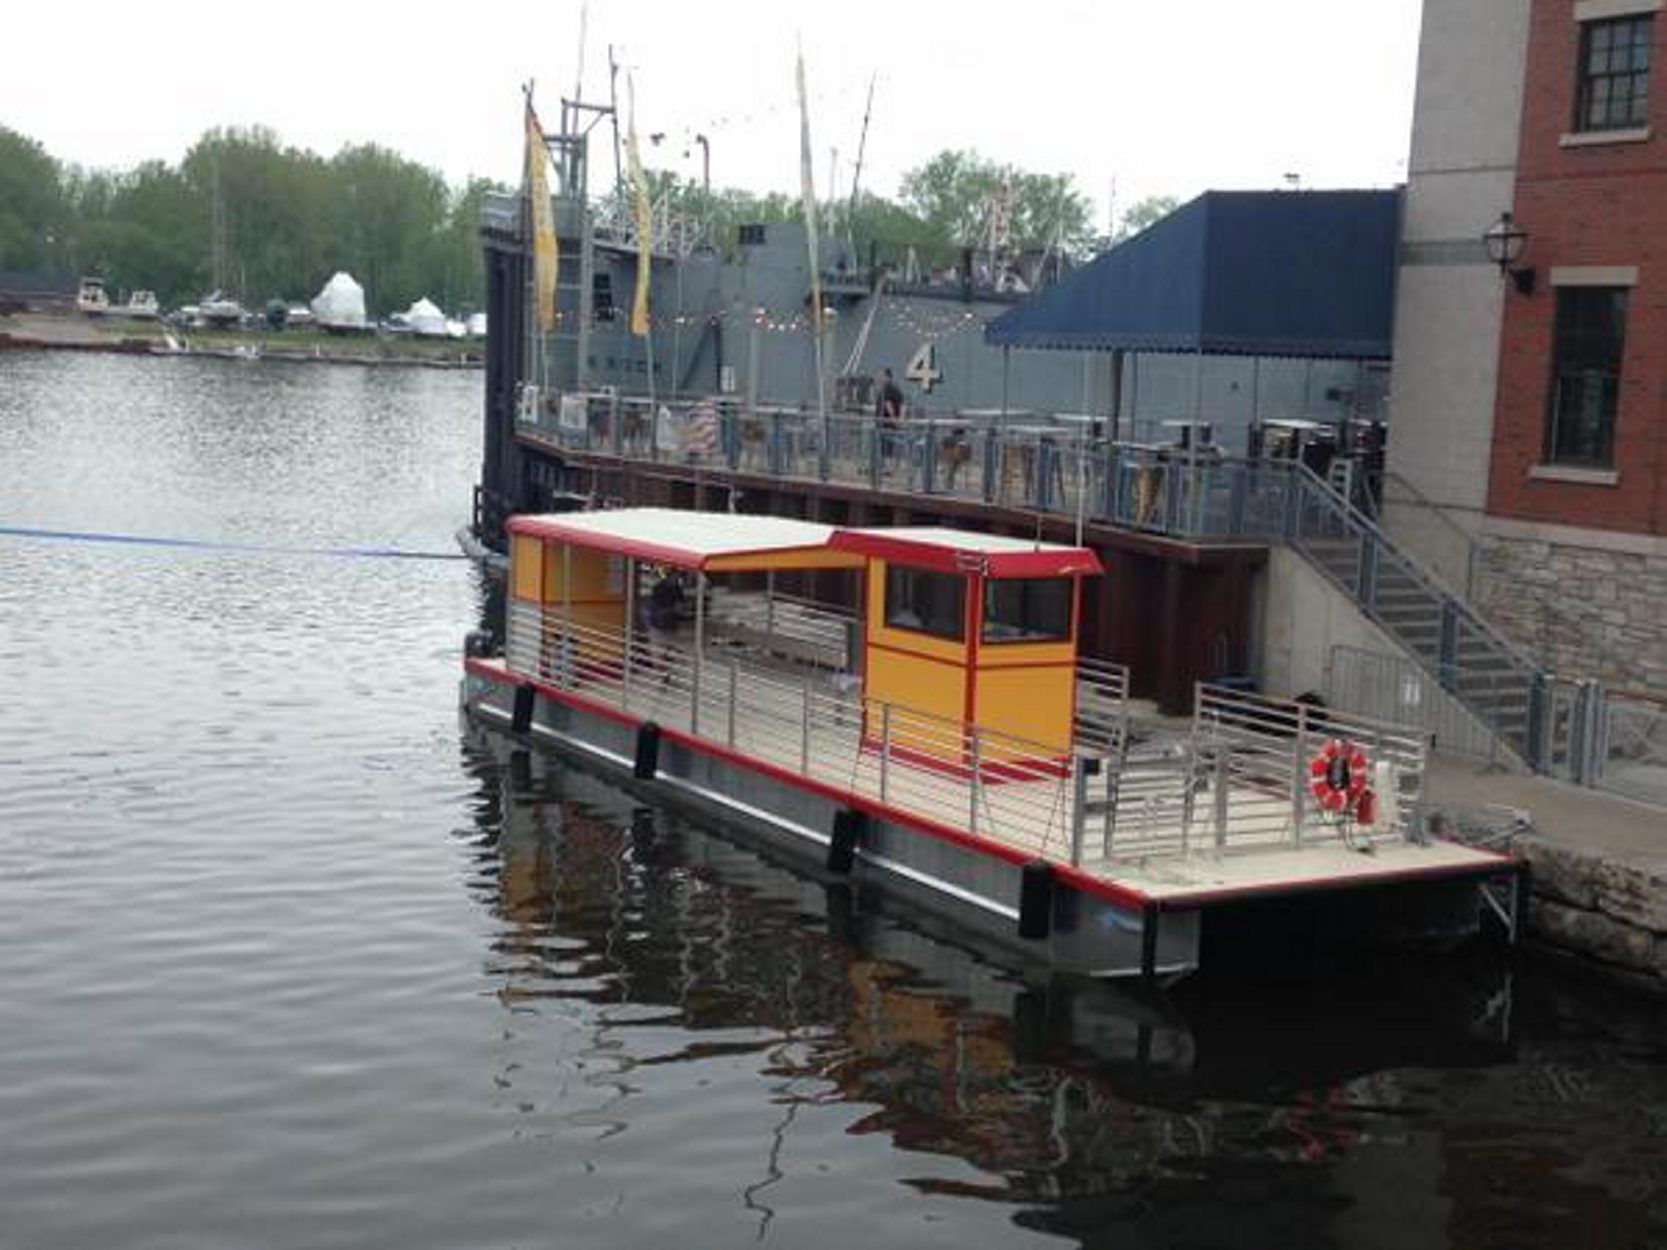 The Queen City Bike Ferry starts operations Monday, between Canalside and the Outer Harbor. ((John Hickey/Buffalo News)